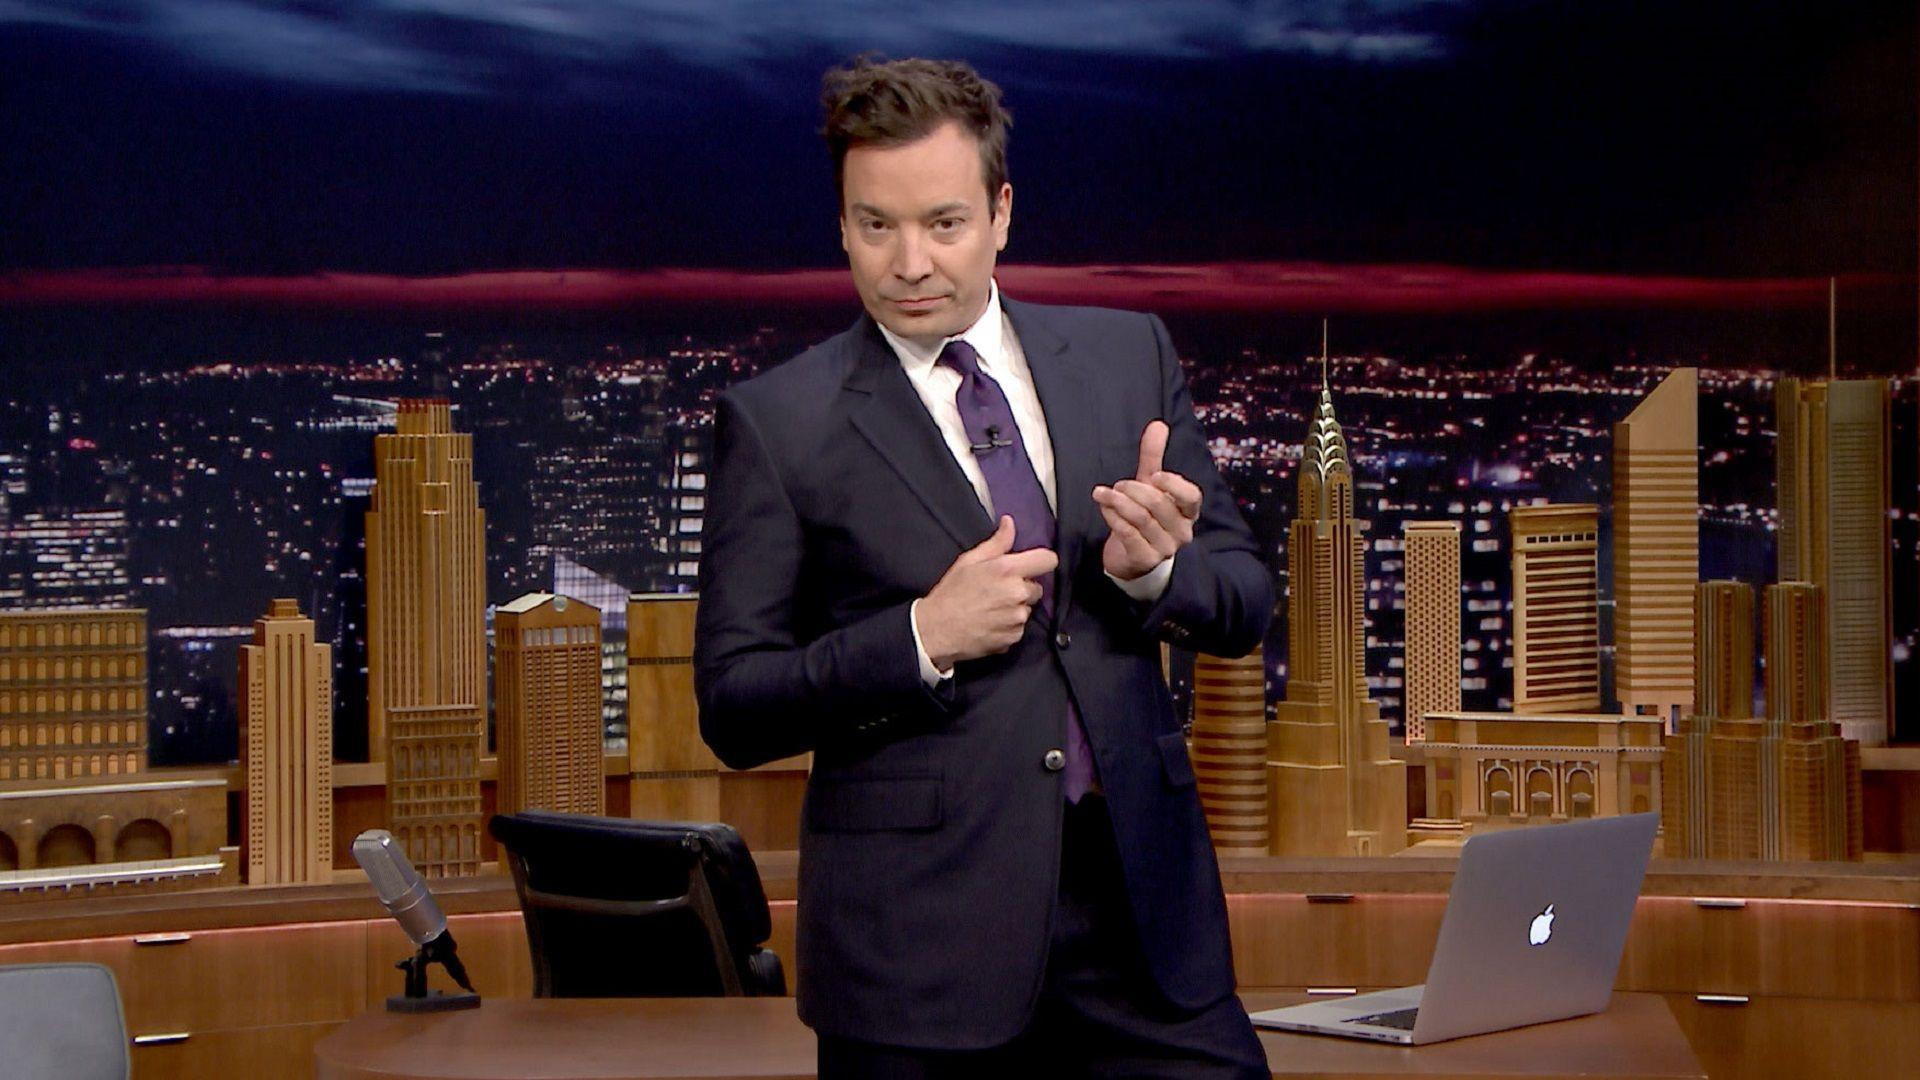 Jimmy Fallon Wallpapers Image Photos Pictures Backgrounds